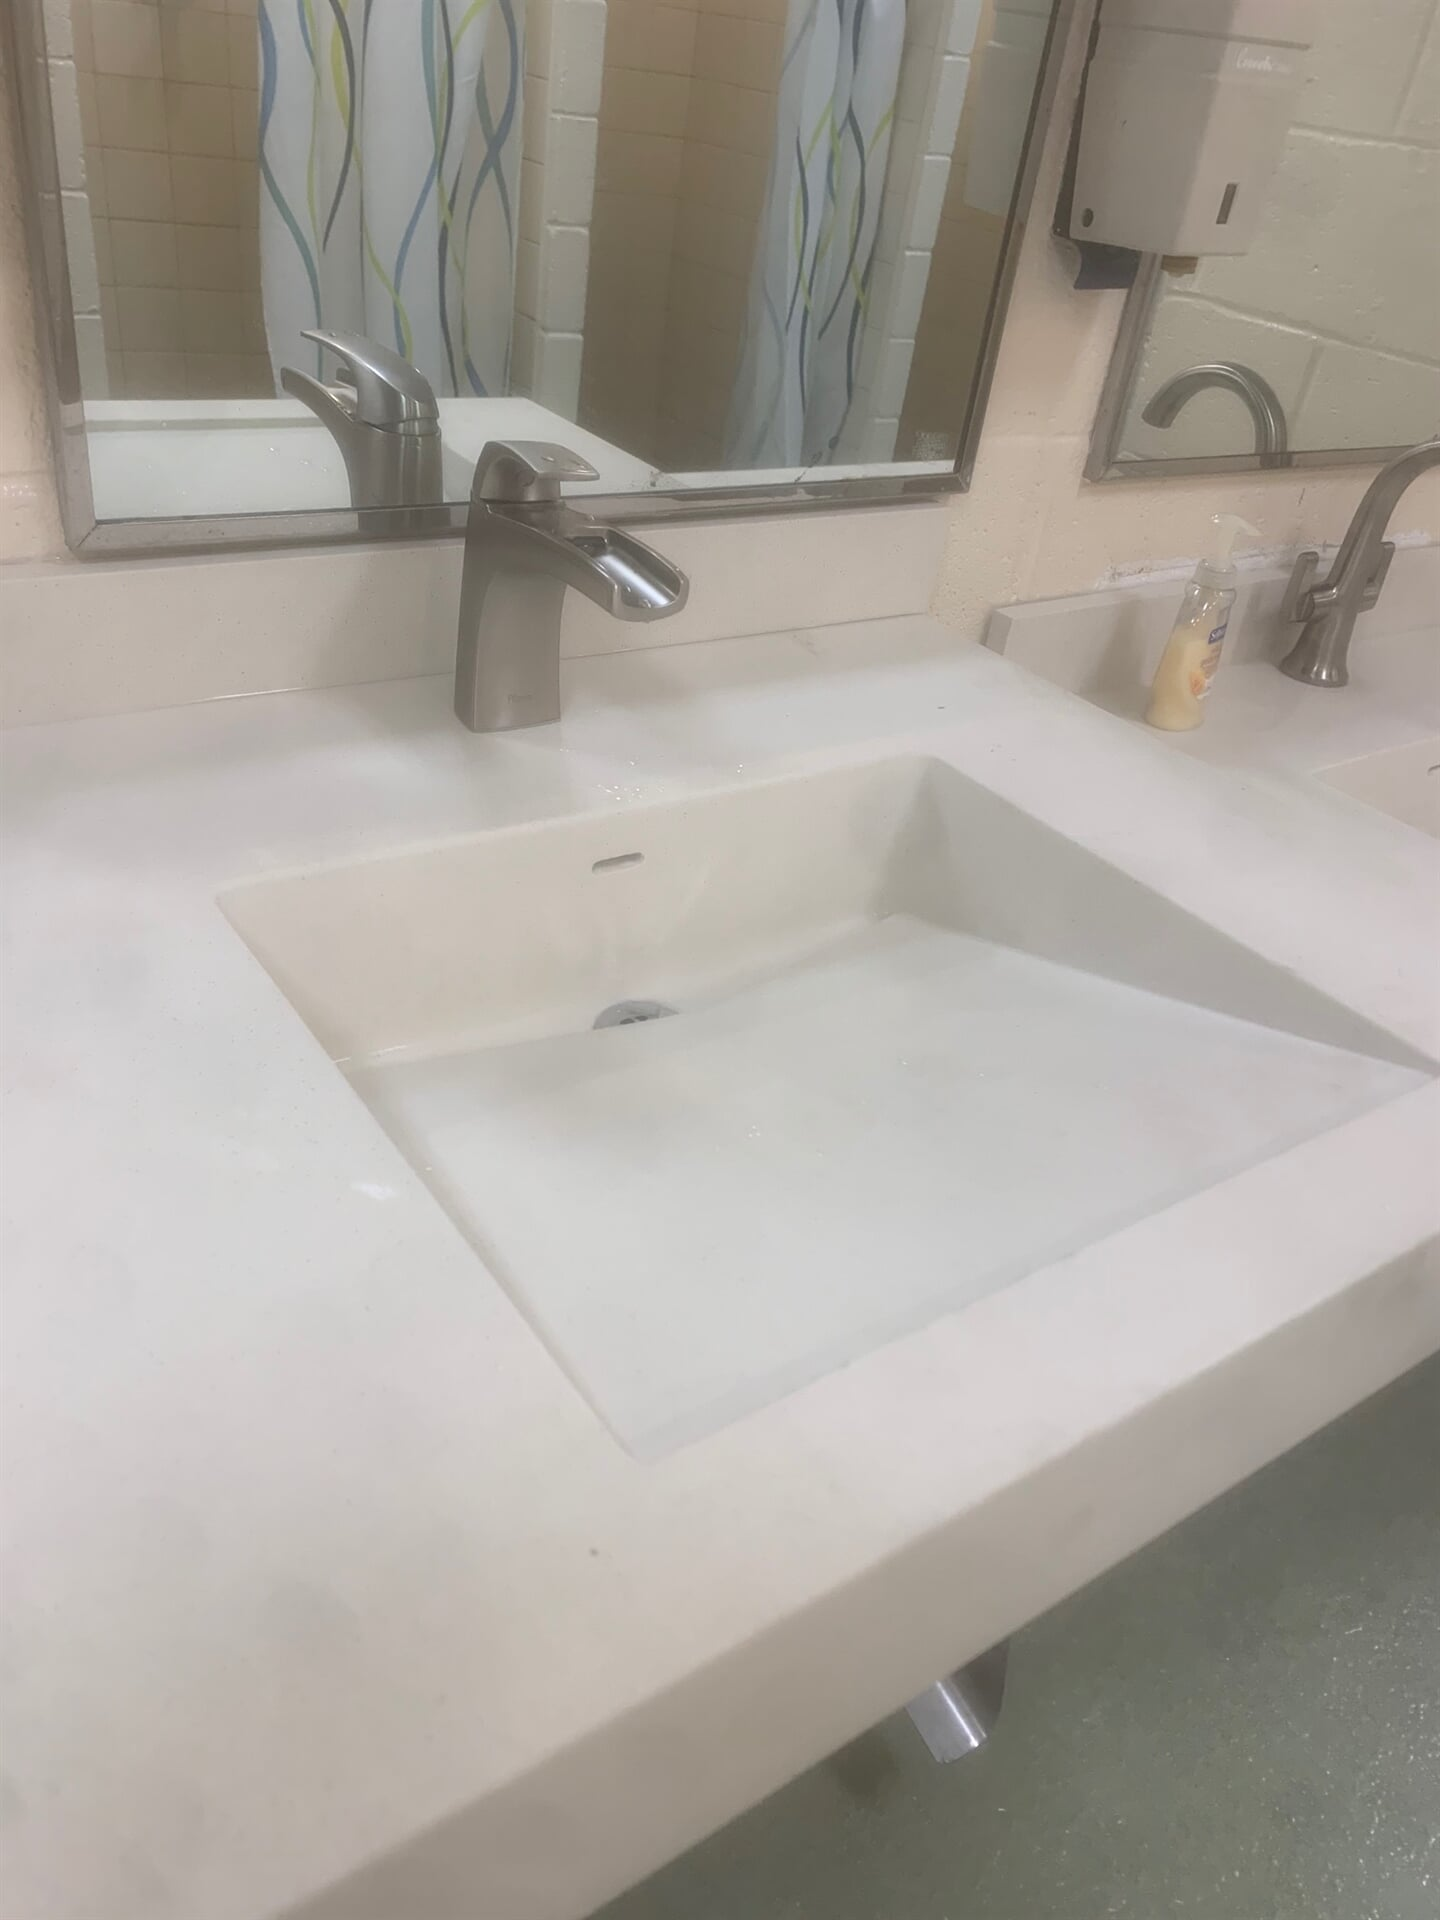 Commercial countertop installation in Germantown, MD from FLOORMAX